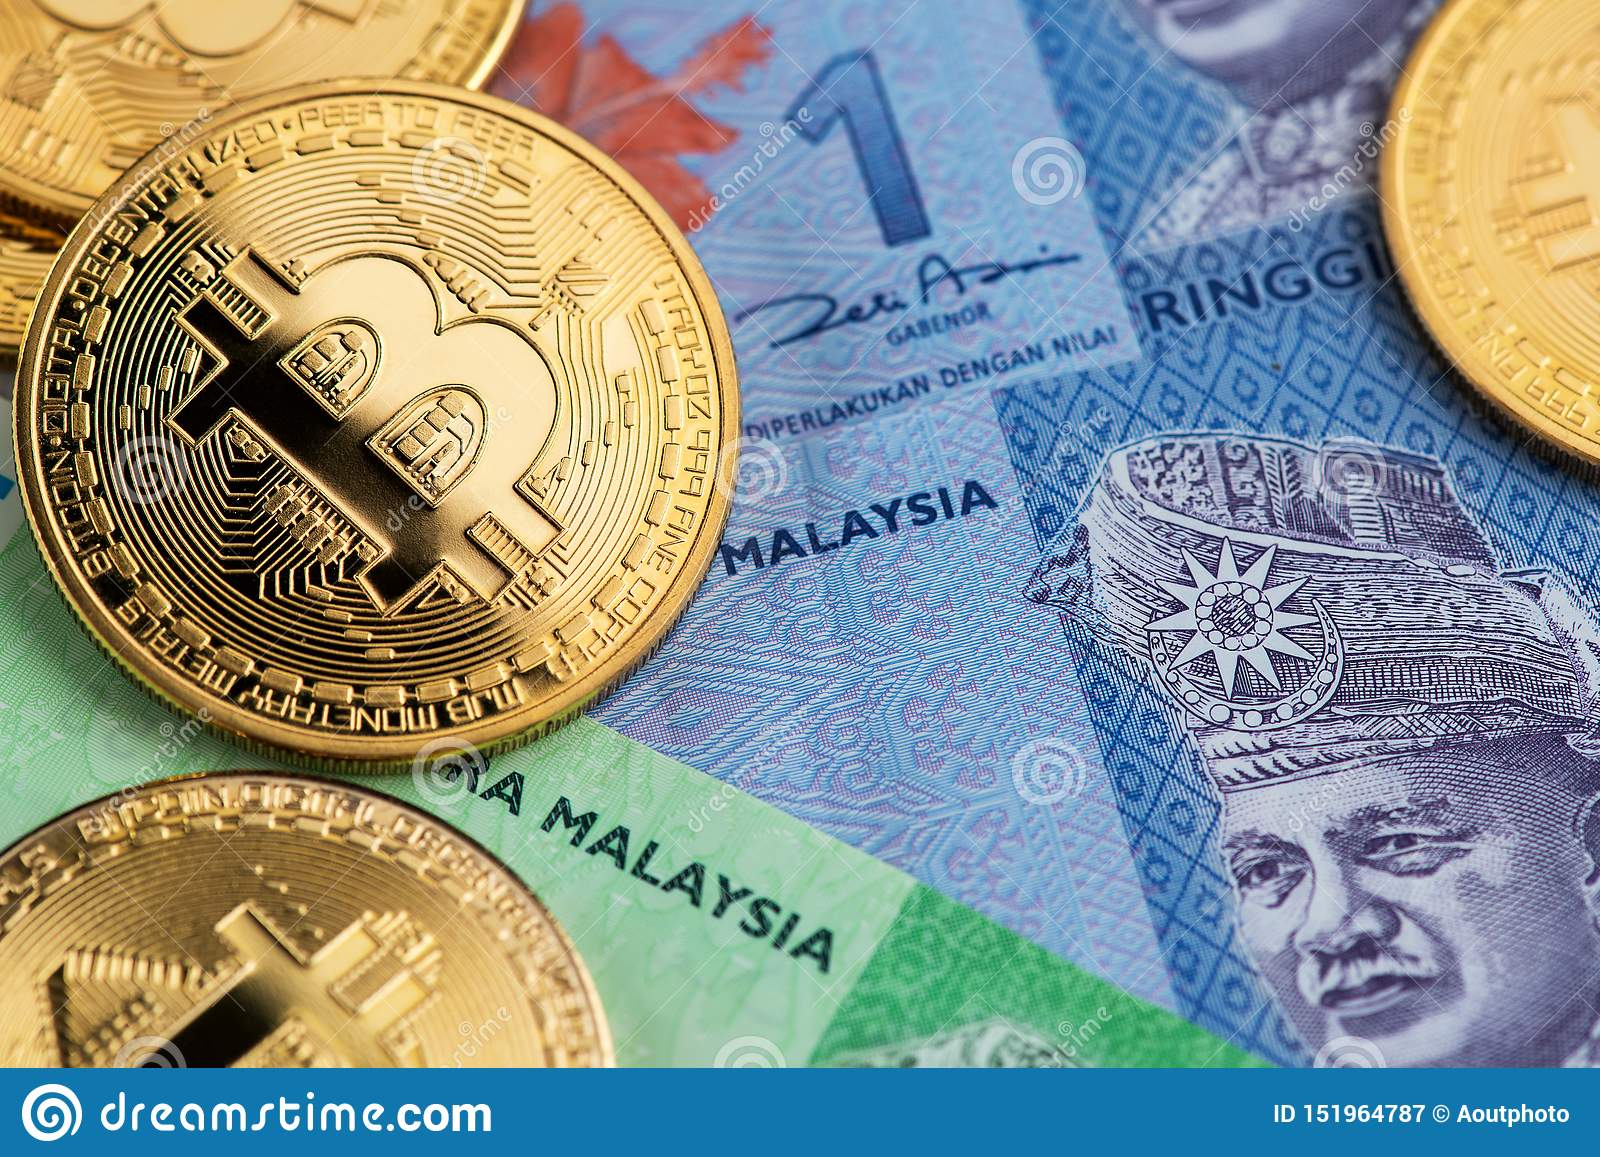 how to cash bitcoin in malaysia